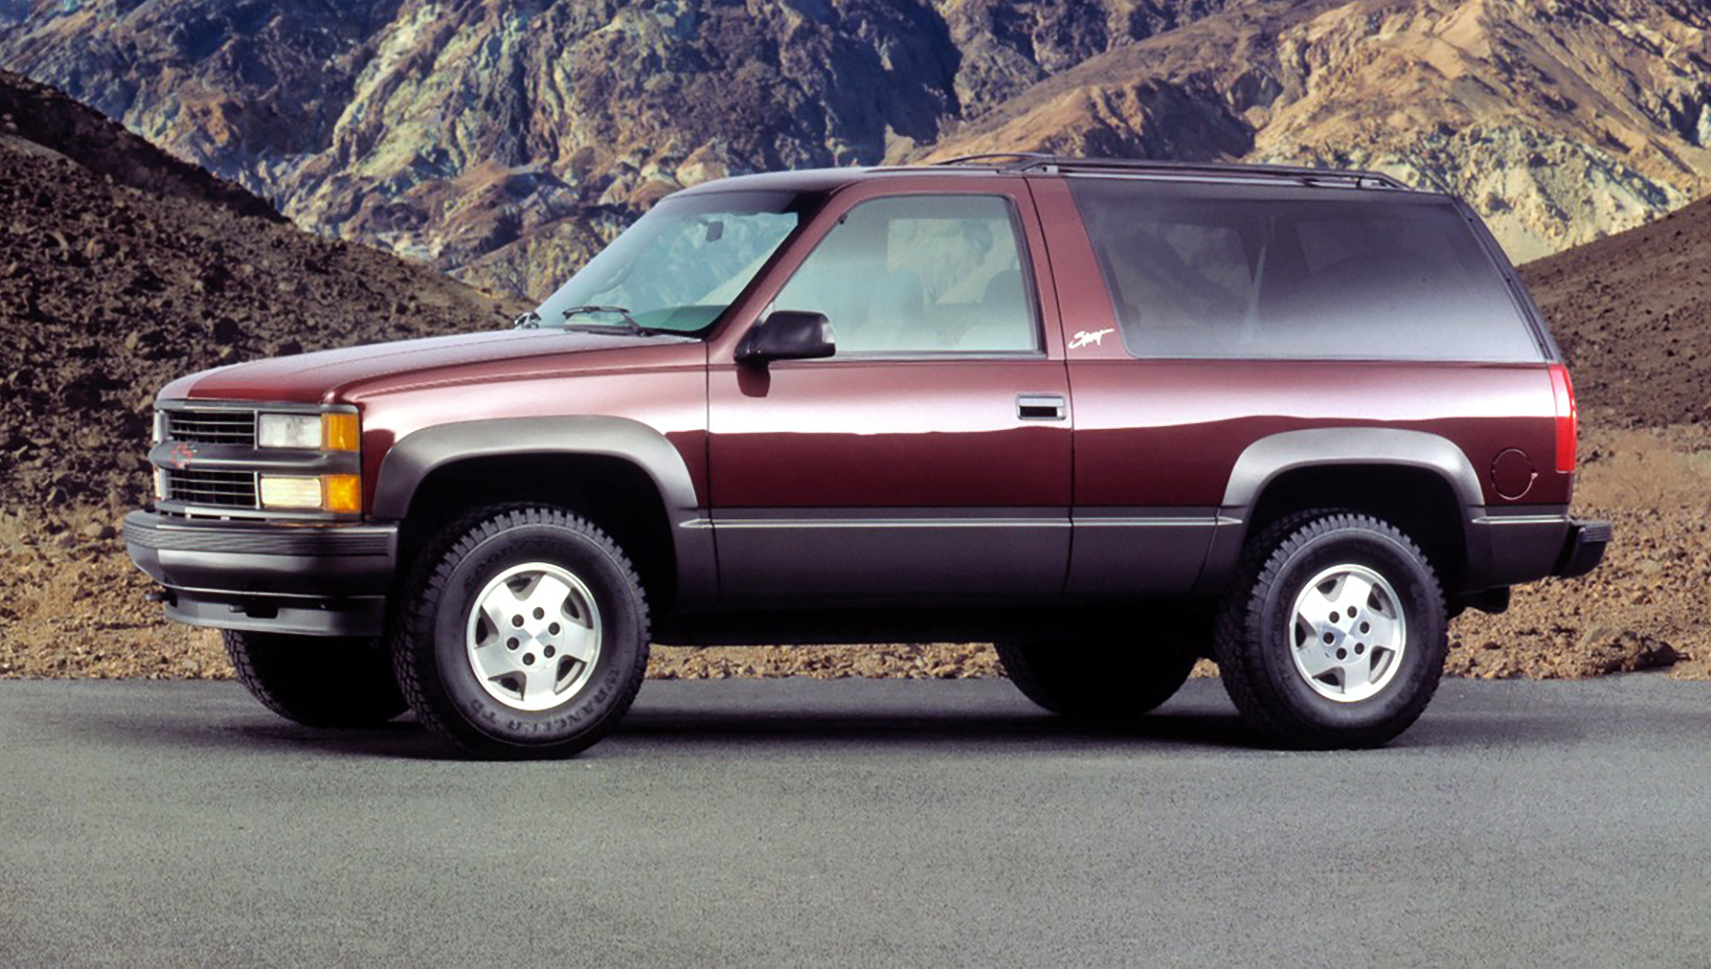 1991 Chevrolet Blazer, Best Looking SUVs